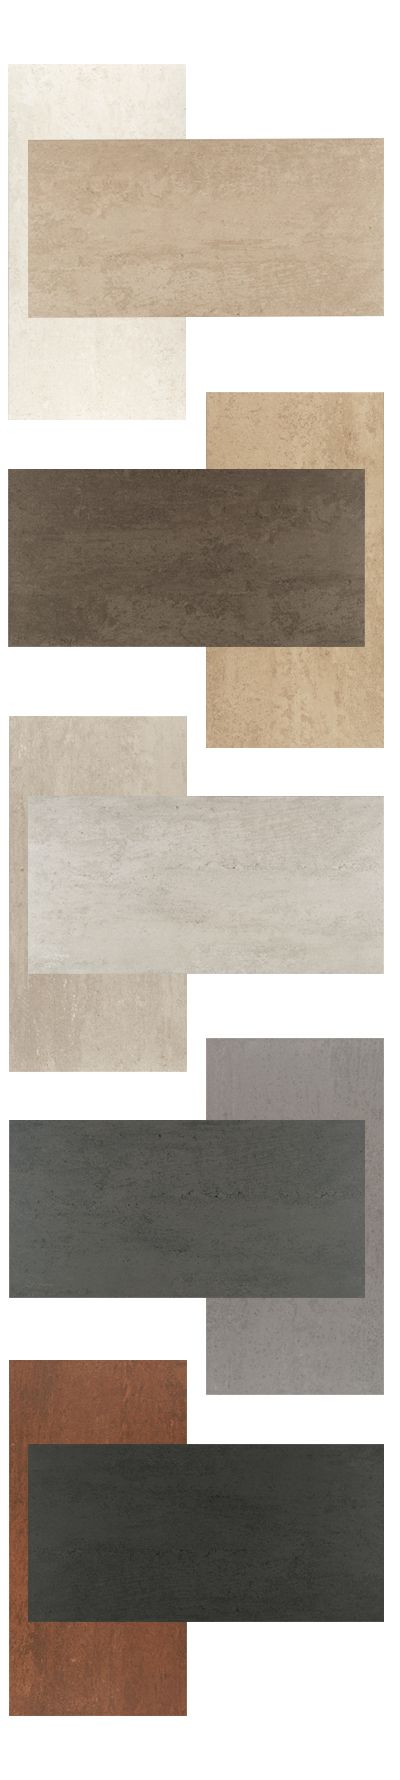 Theoretical field tile is offered in Whimsical White, Ideal Beige, True Beige, Absolute Brown, Fundamental Gray, Logical Gray, Creative Gray, Imaginative Gray, Deep Copper, and Abstract Black.   Field tile is available in 24 x 24, 12 x 24, and 6 x 24.